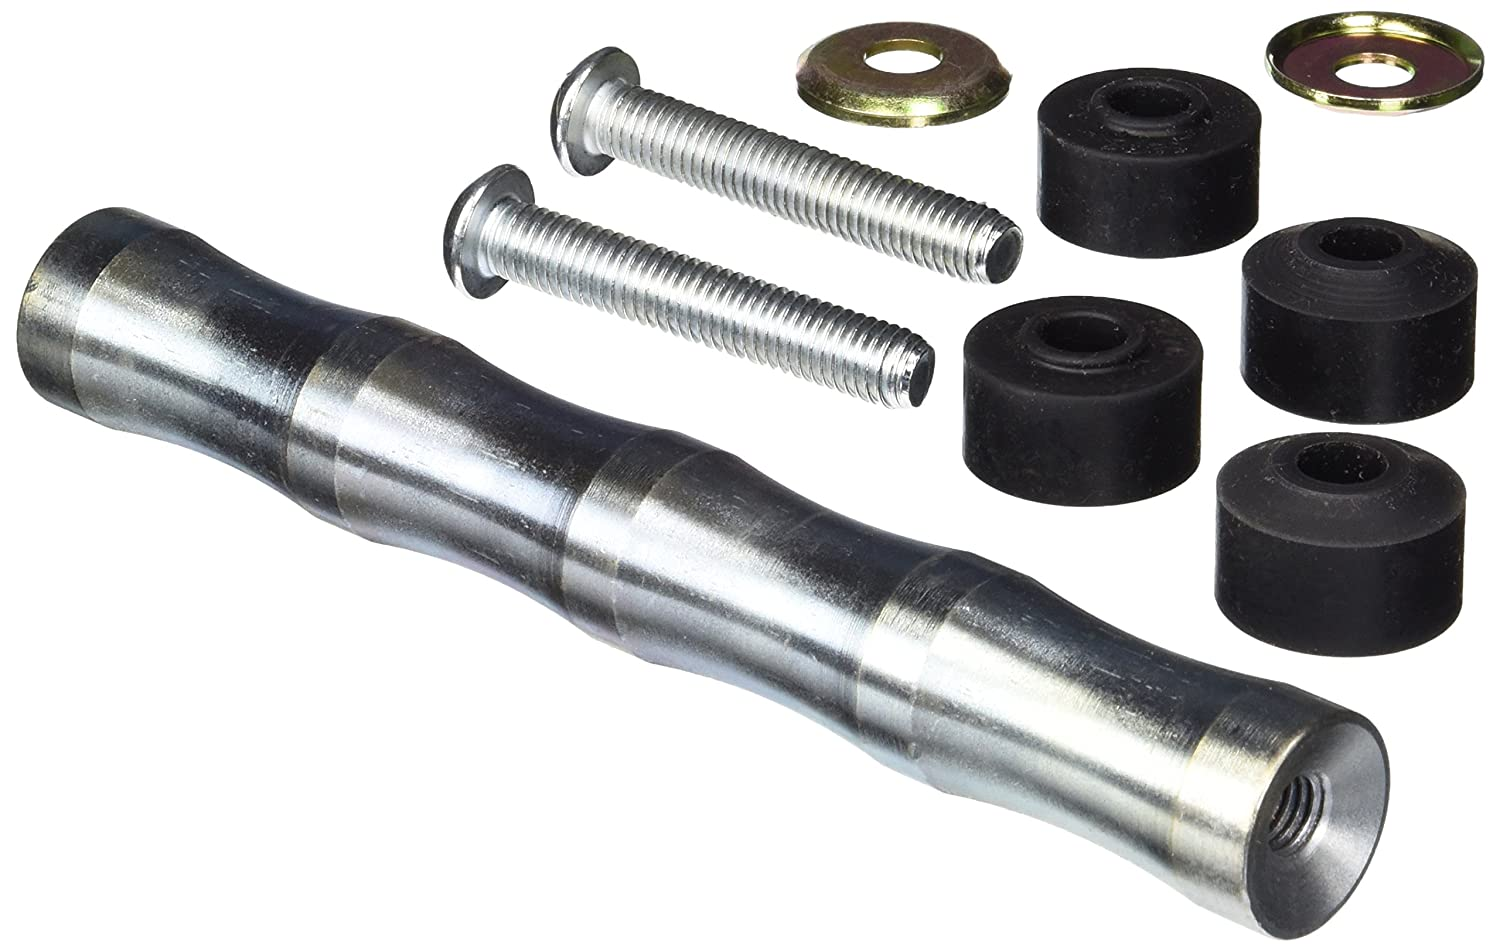 Fabtech FTS1127 Stainless Steel Sway Bar End Link with Hardware 4.3130R